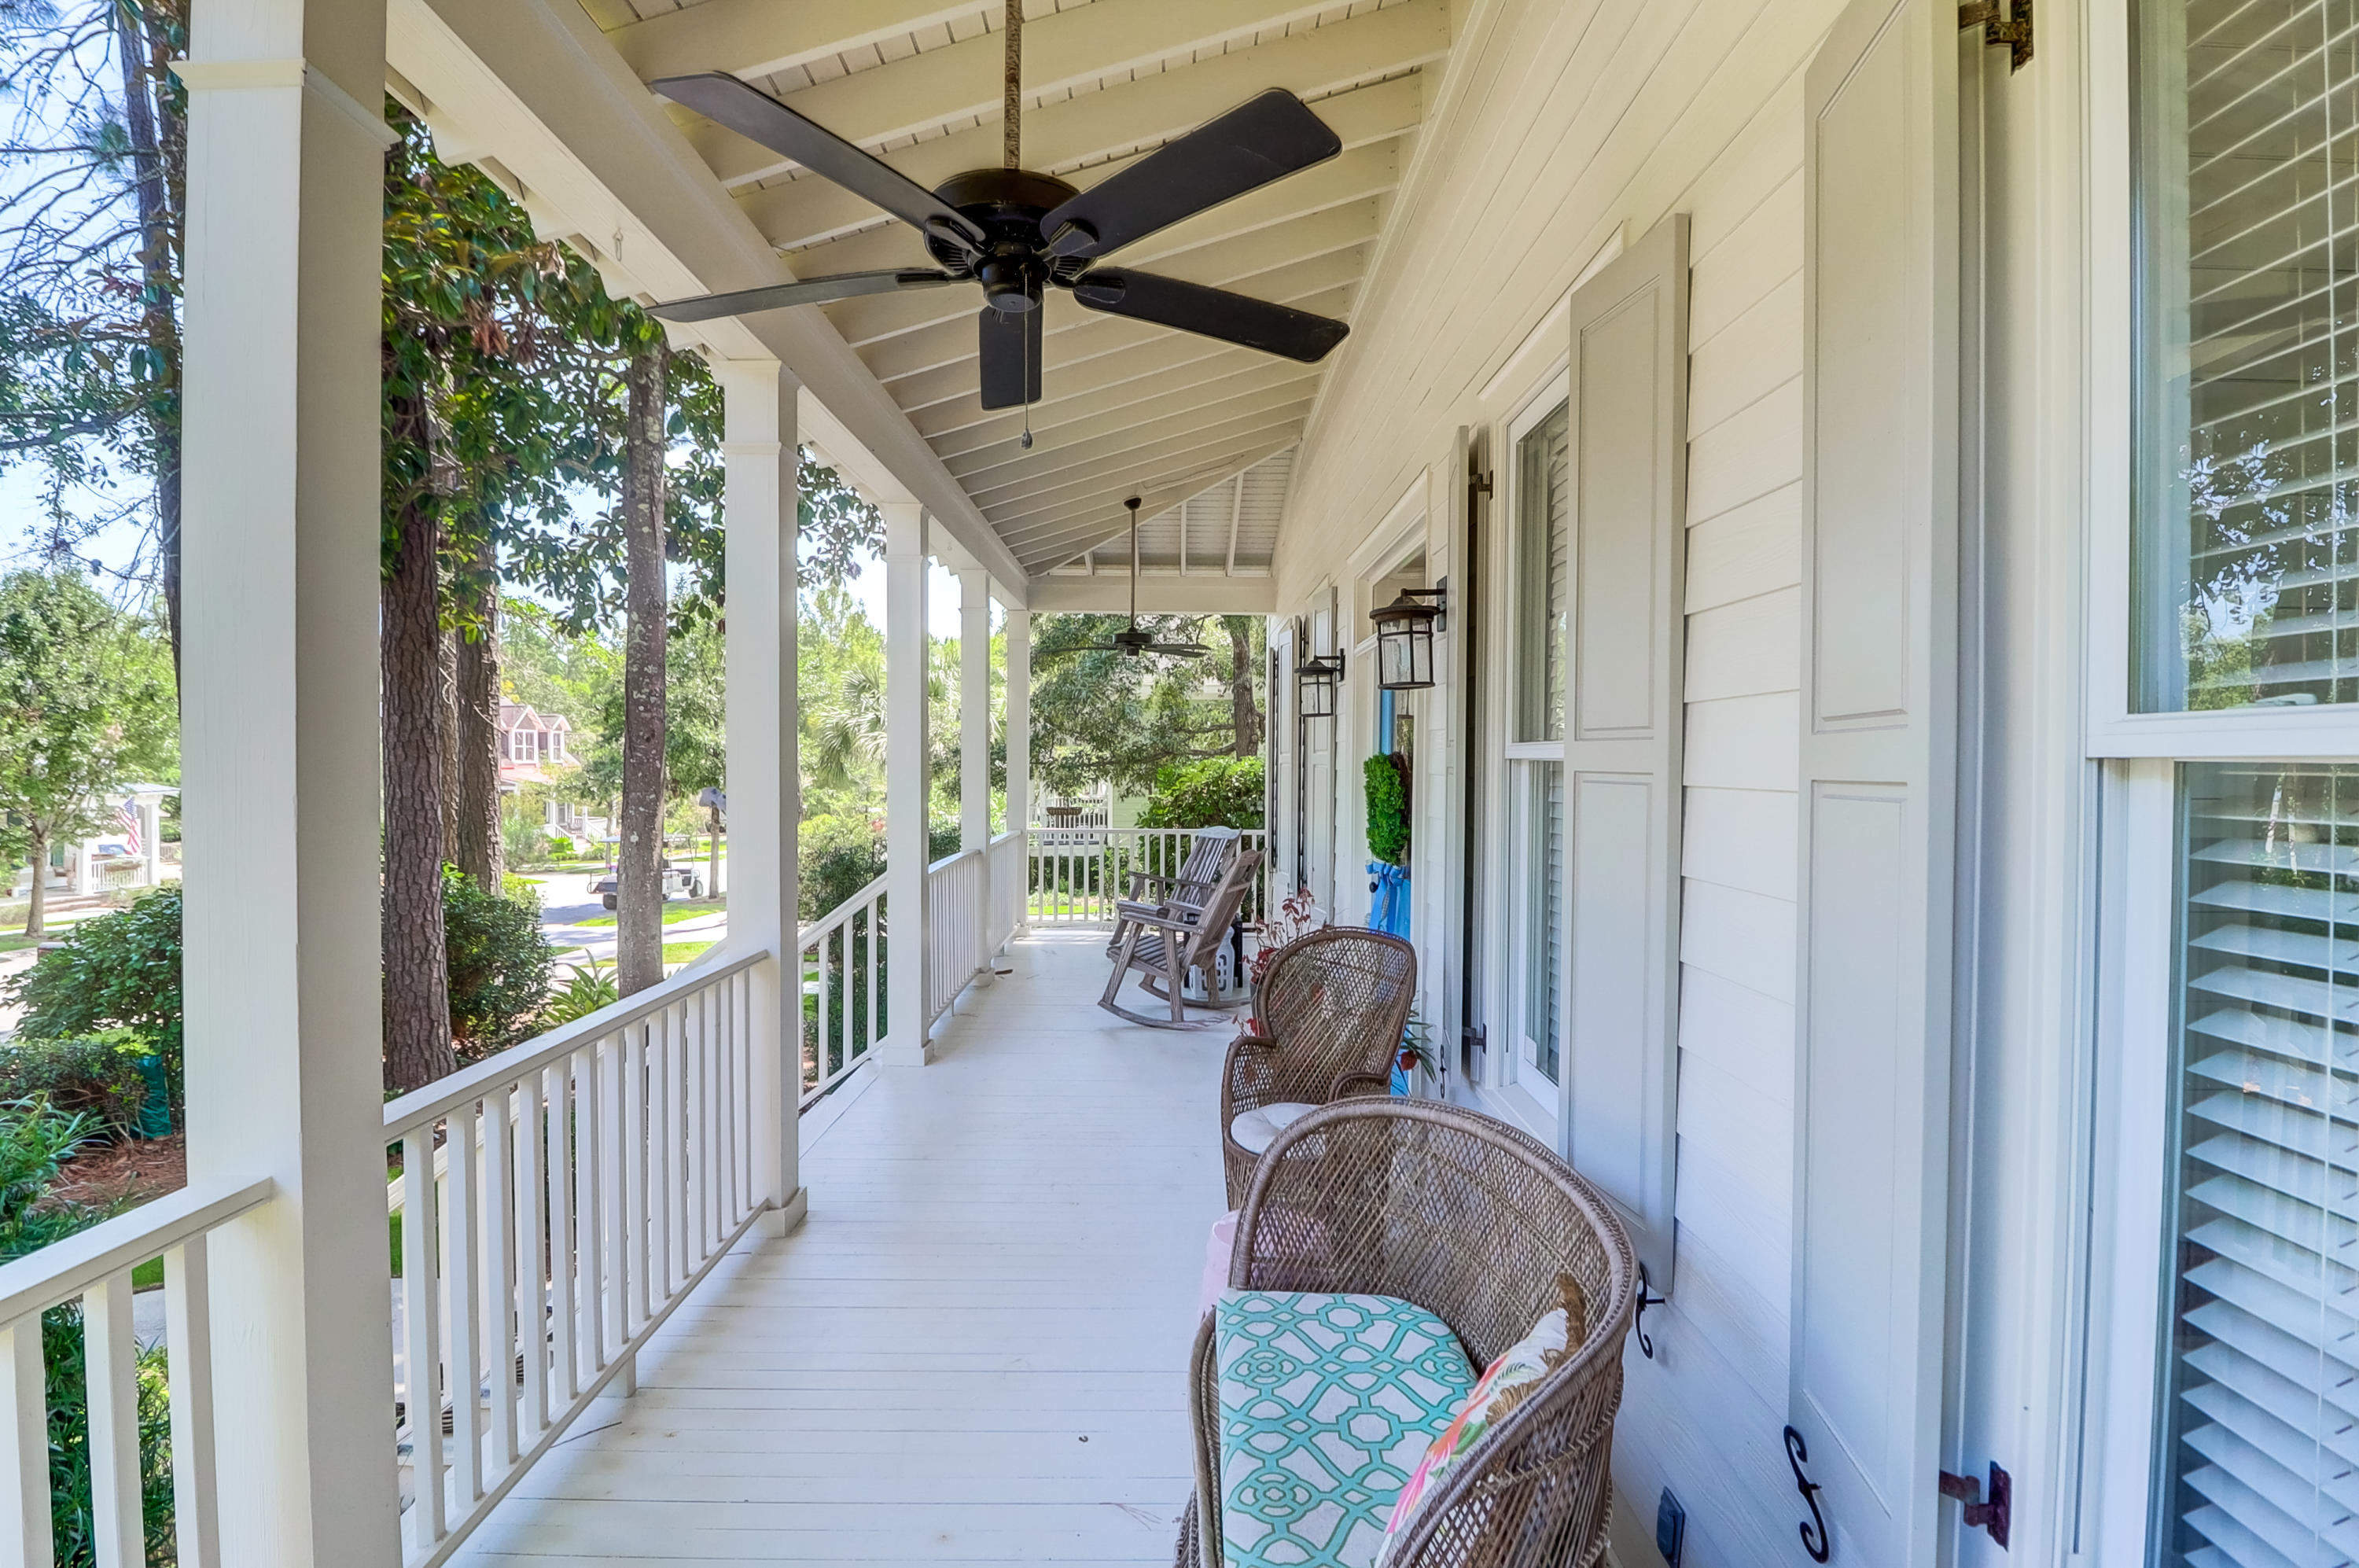 The Villages In St Johns Woods Homes For Sale - 5056 Coral Reef Dr, Johns Island, SC - 51